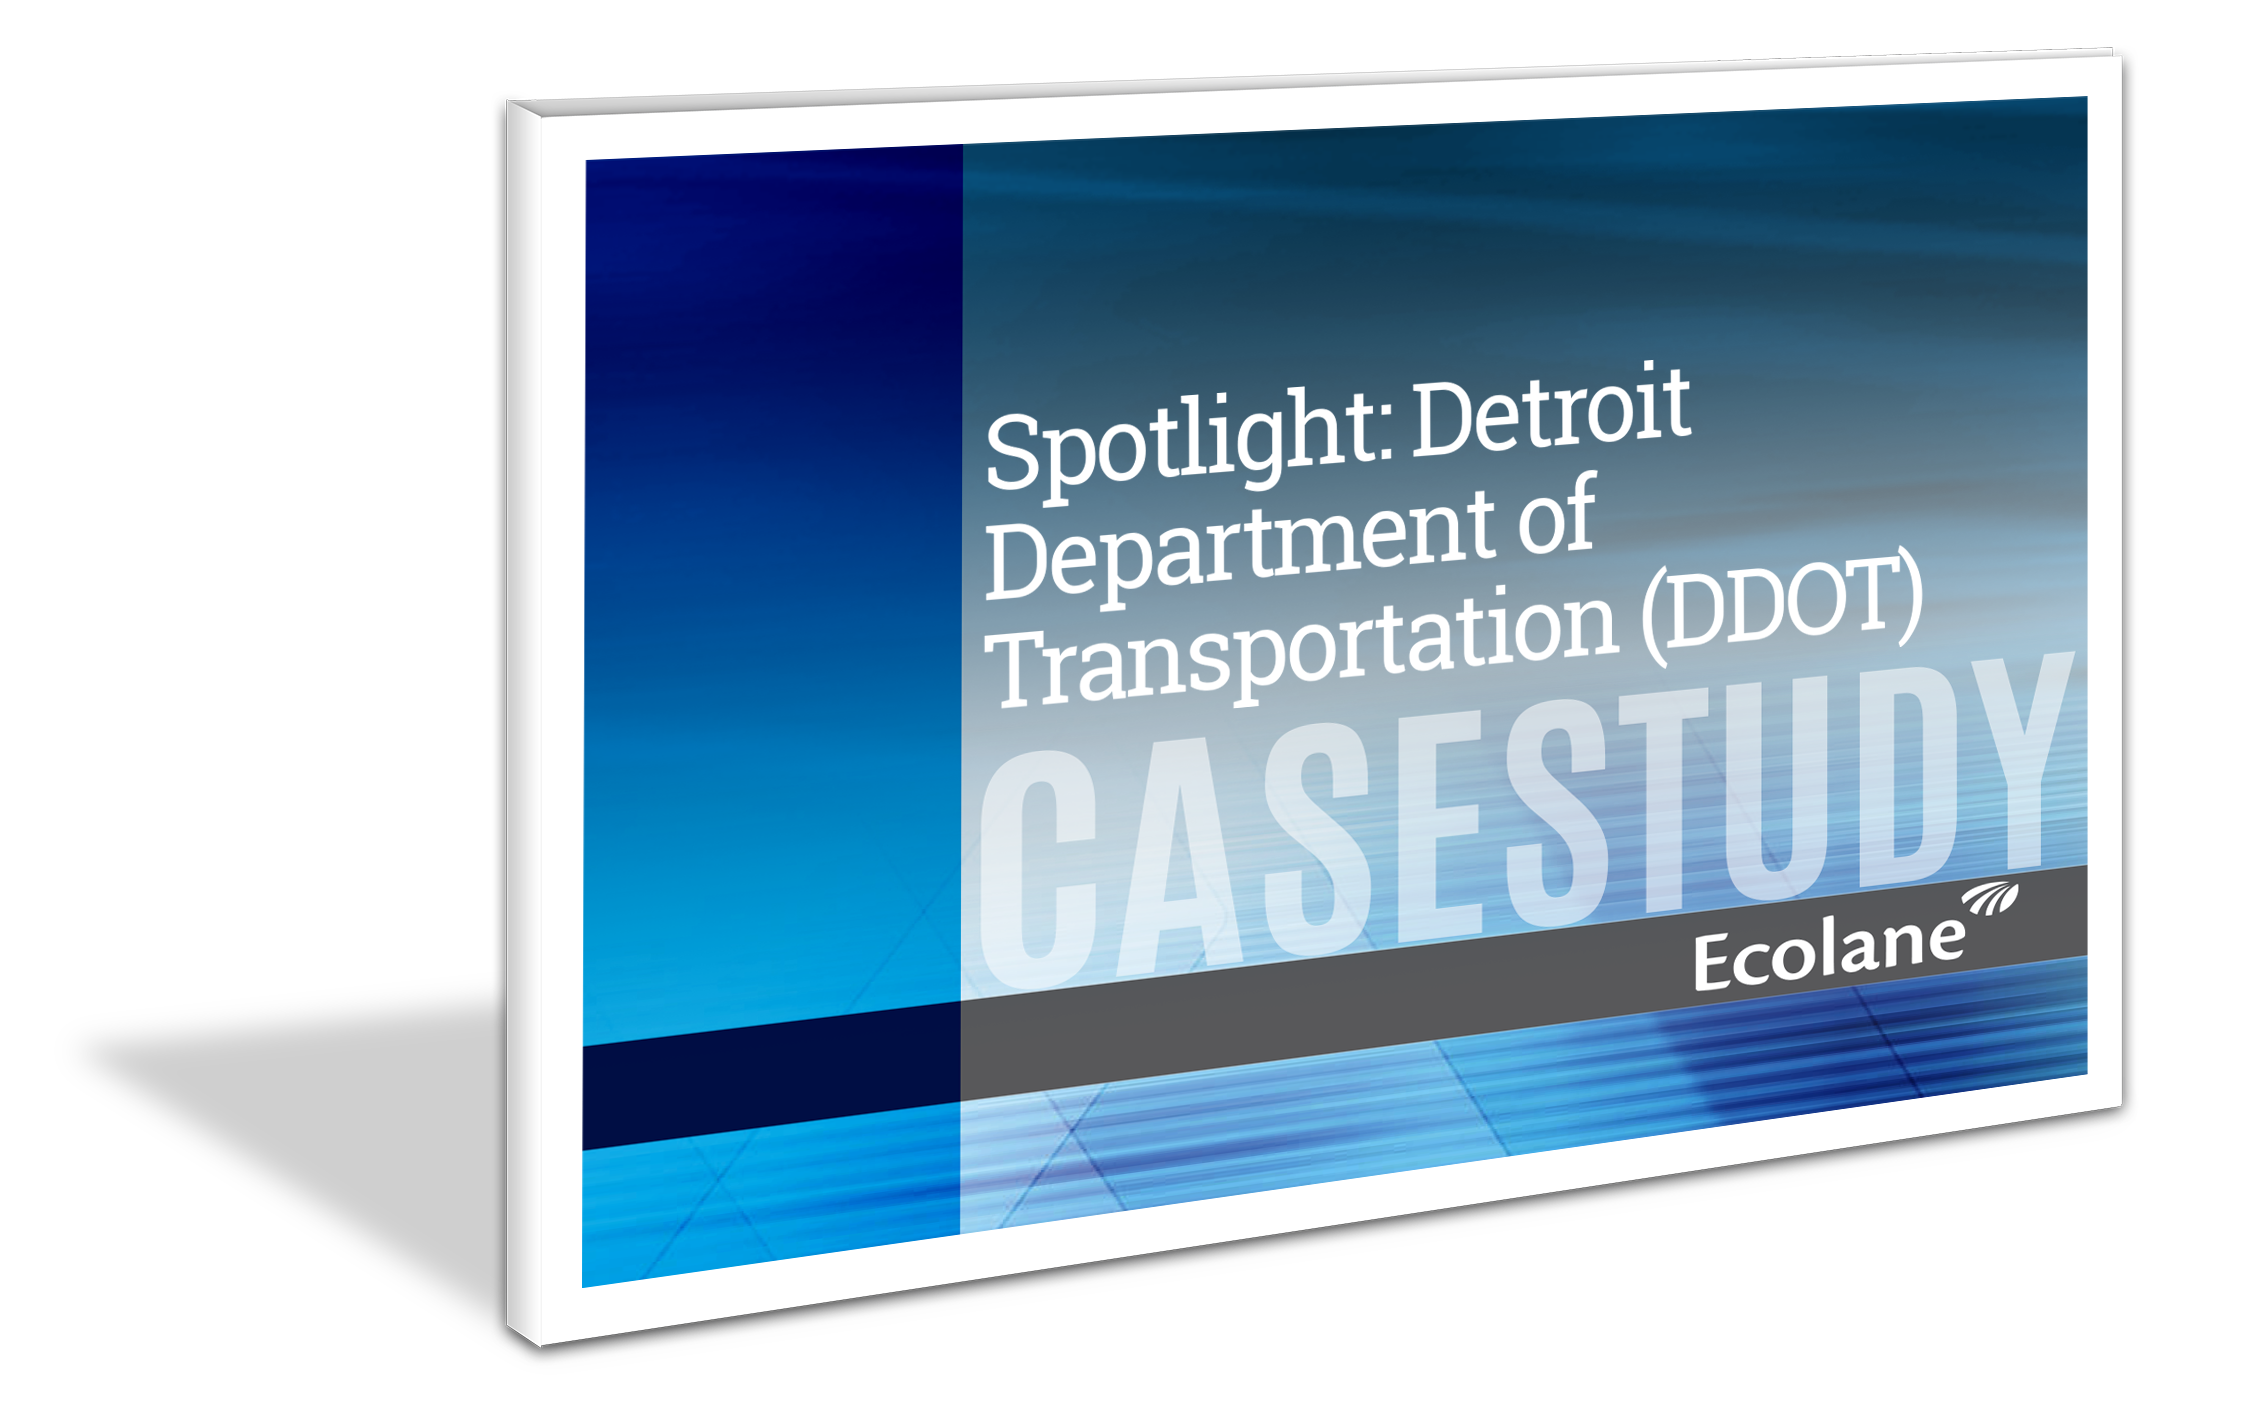 eco-casestudy-ddot2-book-cover